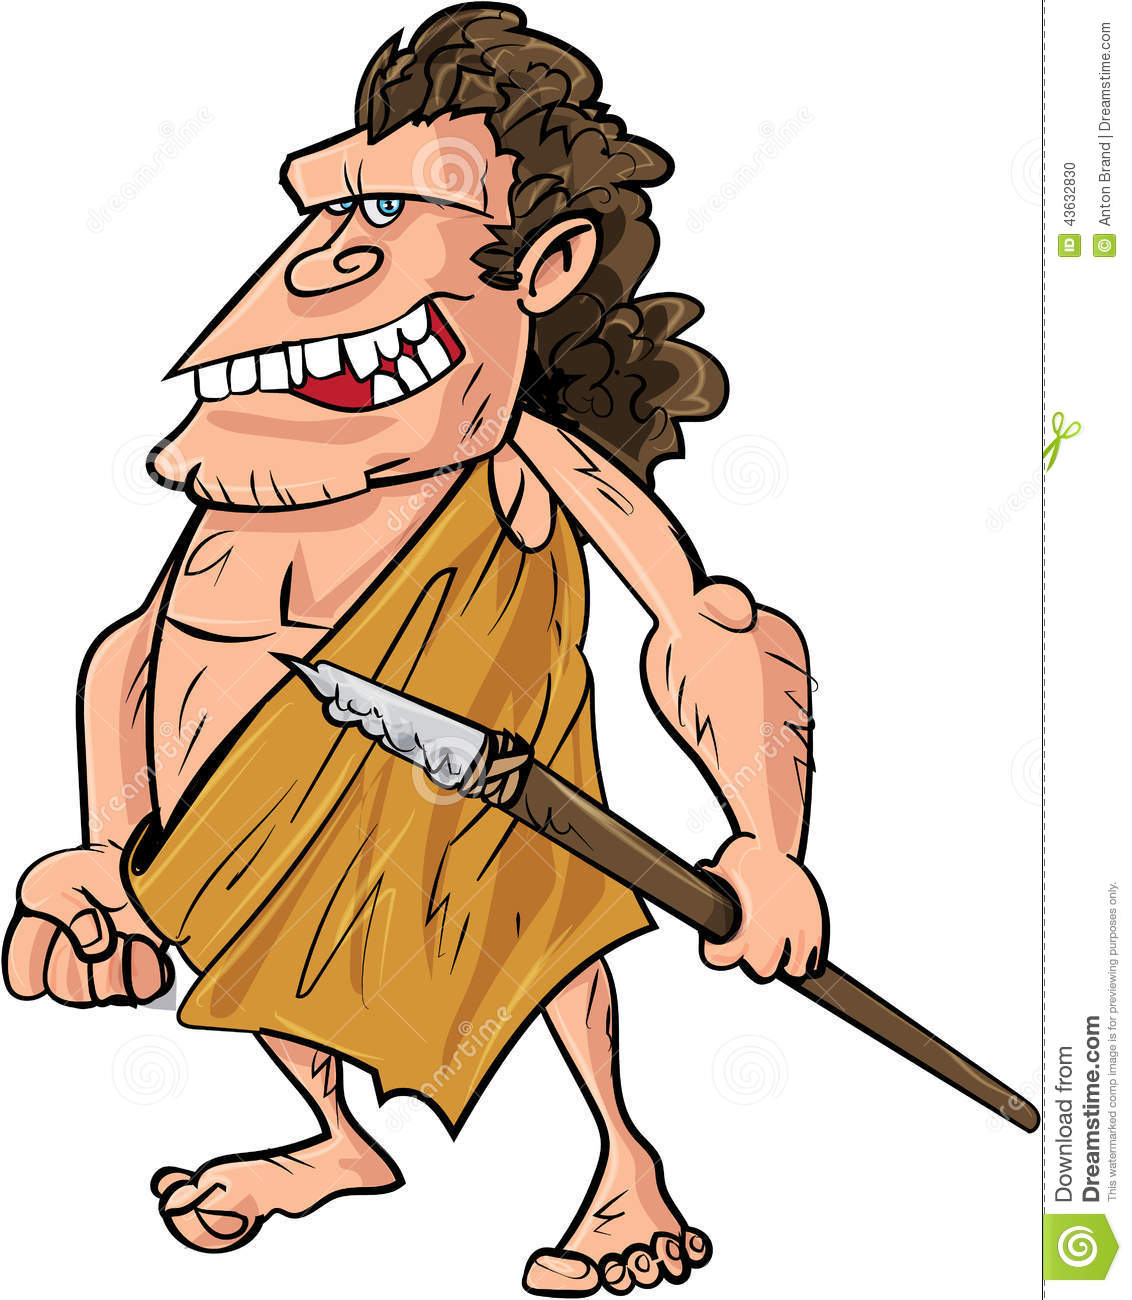 Caveman Spear : Cartoon caveman with a spear stock illustration image